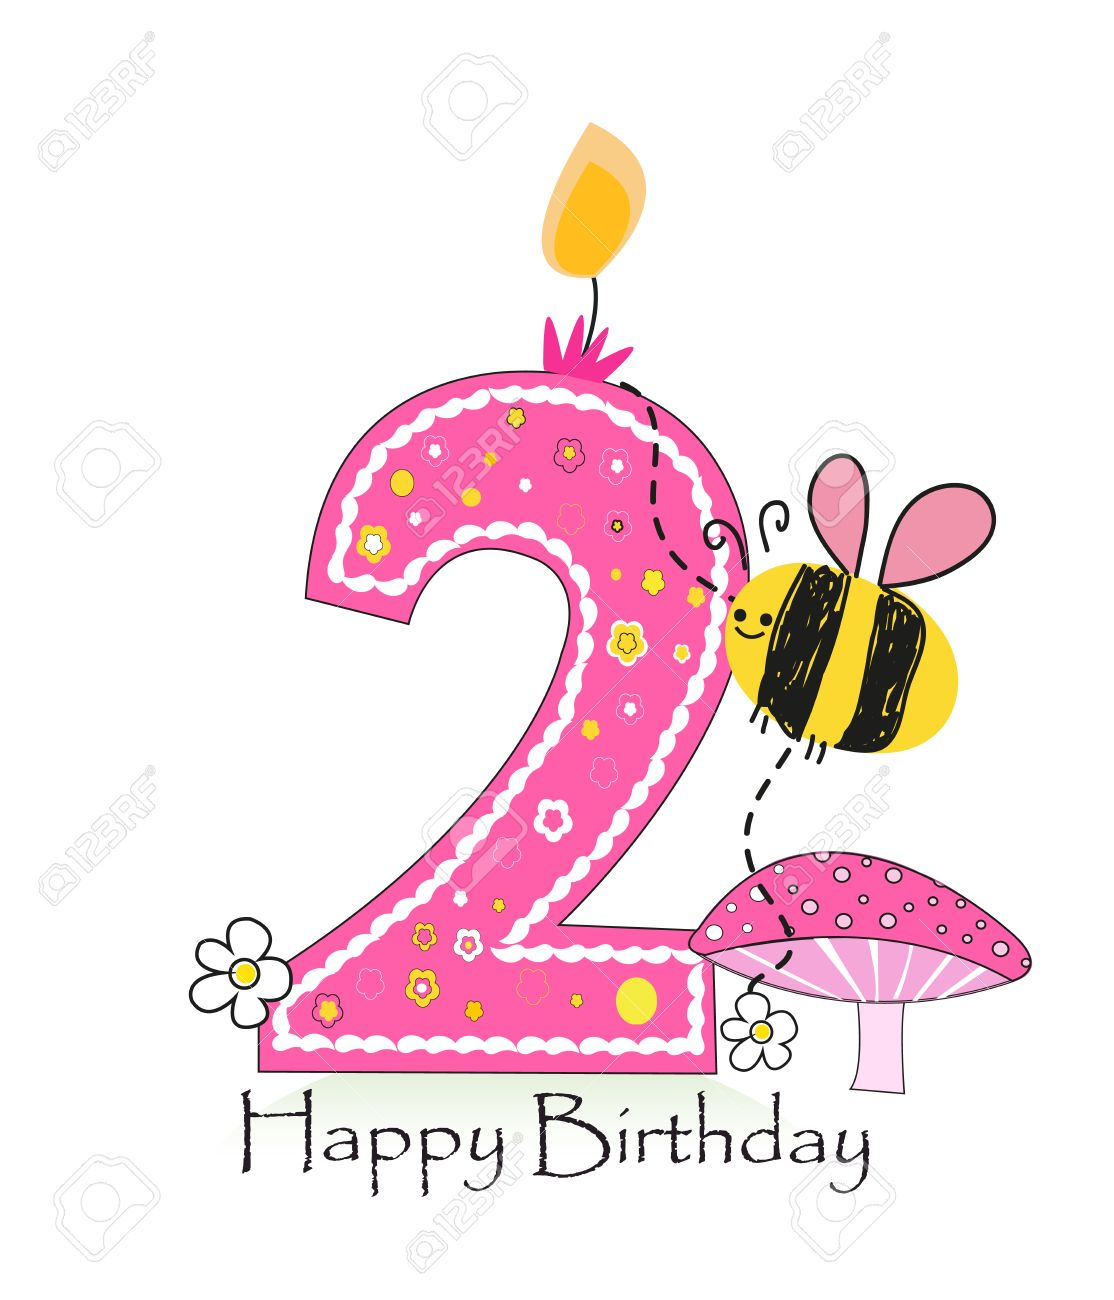 happy birthday baby girl images ; 55679495-happy-second-birthday-candle-baby-girl-greeting-card-with-bee-and-daisy-vector-background